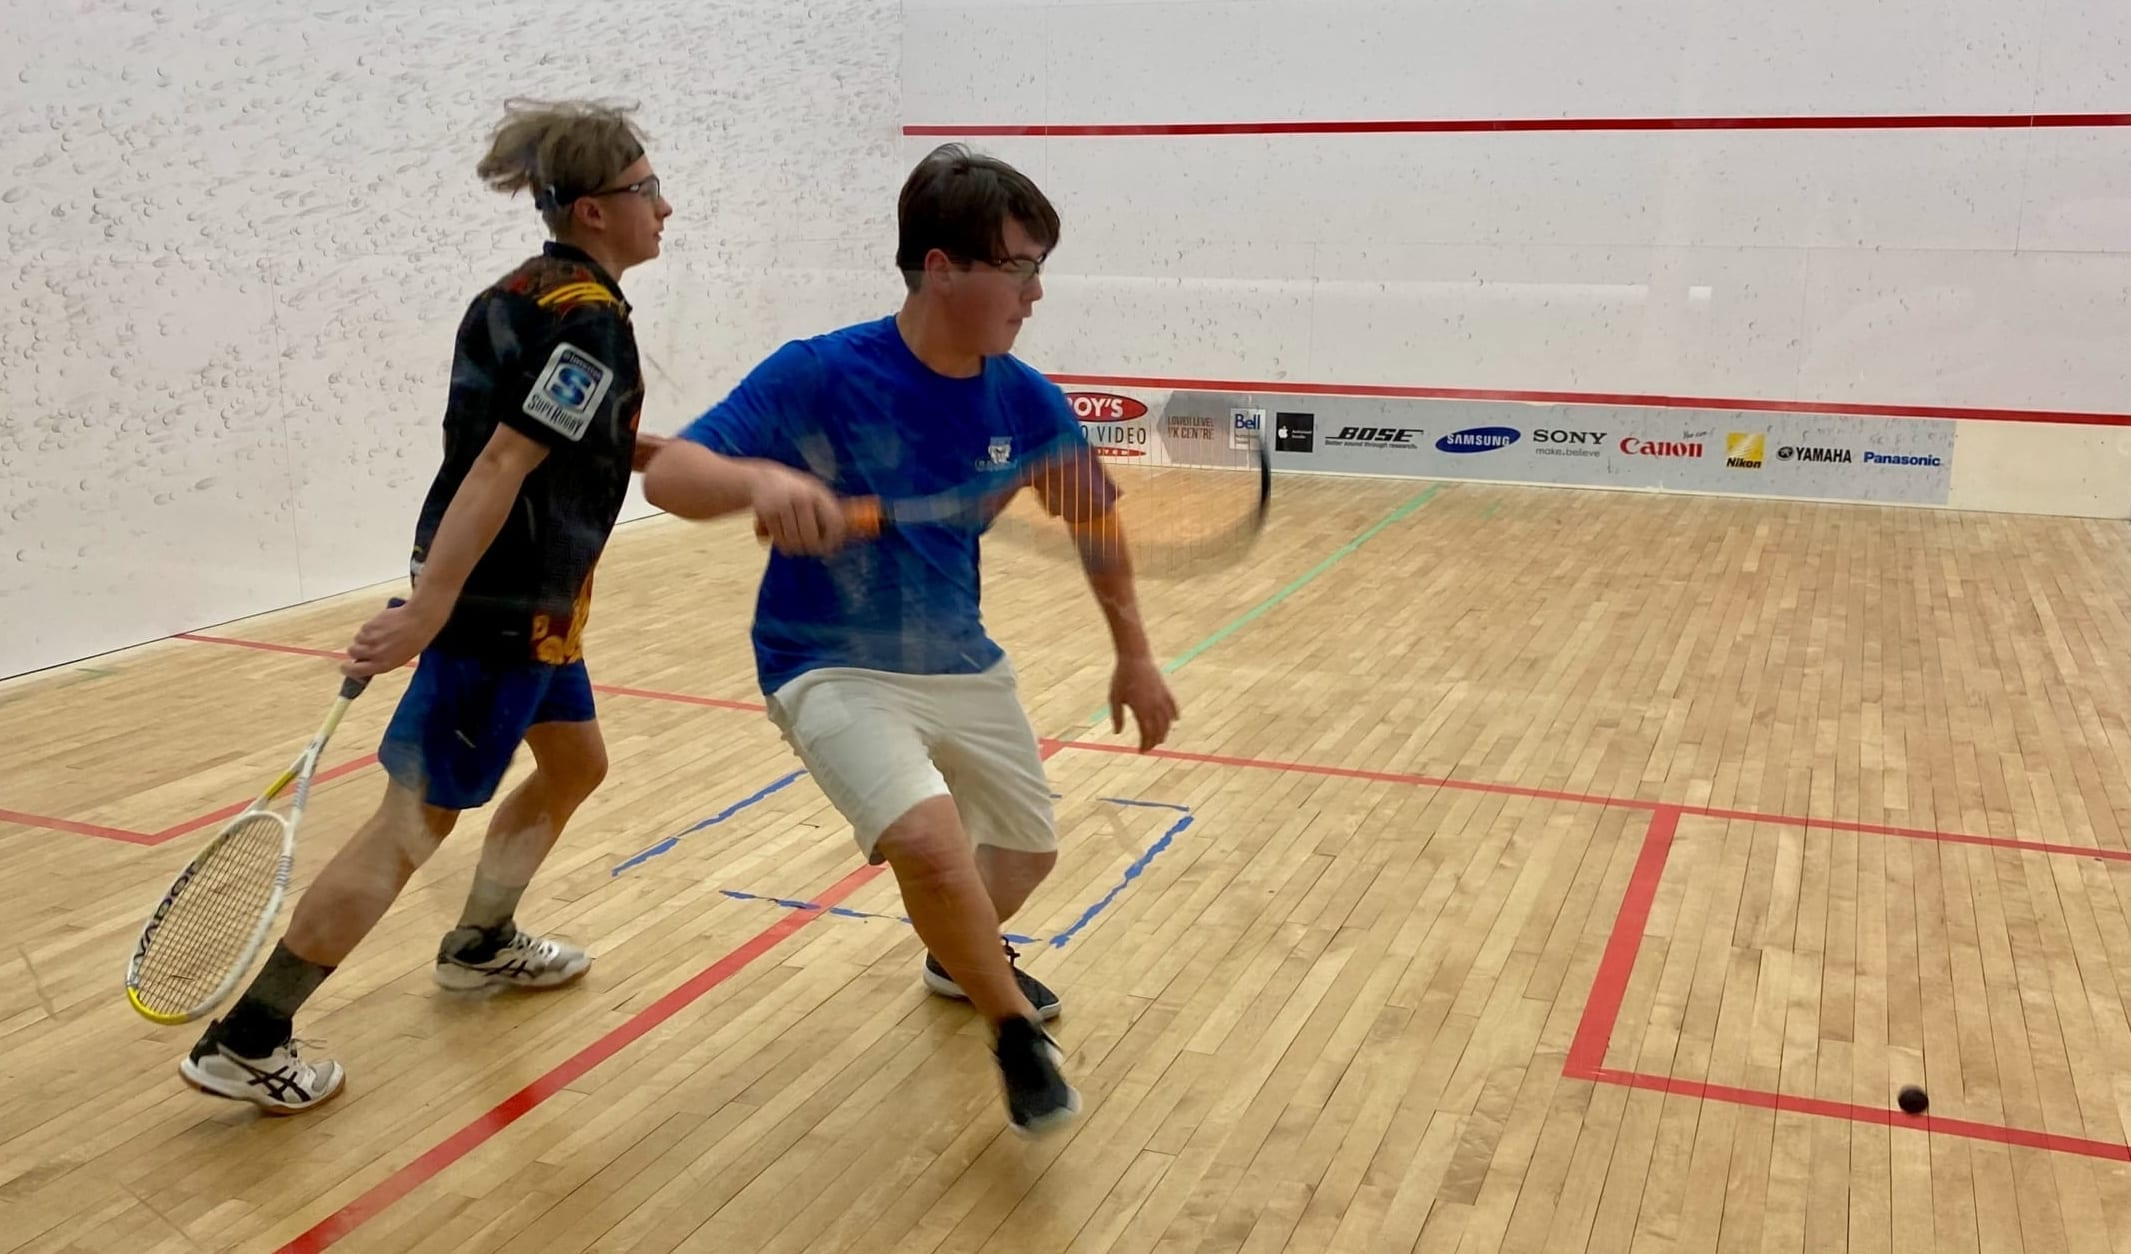 Carter Robertson, right, gets set to return a shot as Loic Hipfner tries to avoid getting in his way during the A division final of the NWT Junior Squash Championships at the Racquet Club on Sunday. photo courtesy of Jeff Hipfner